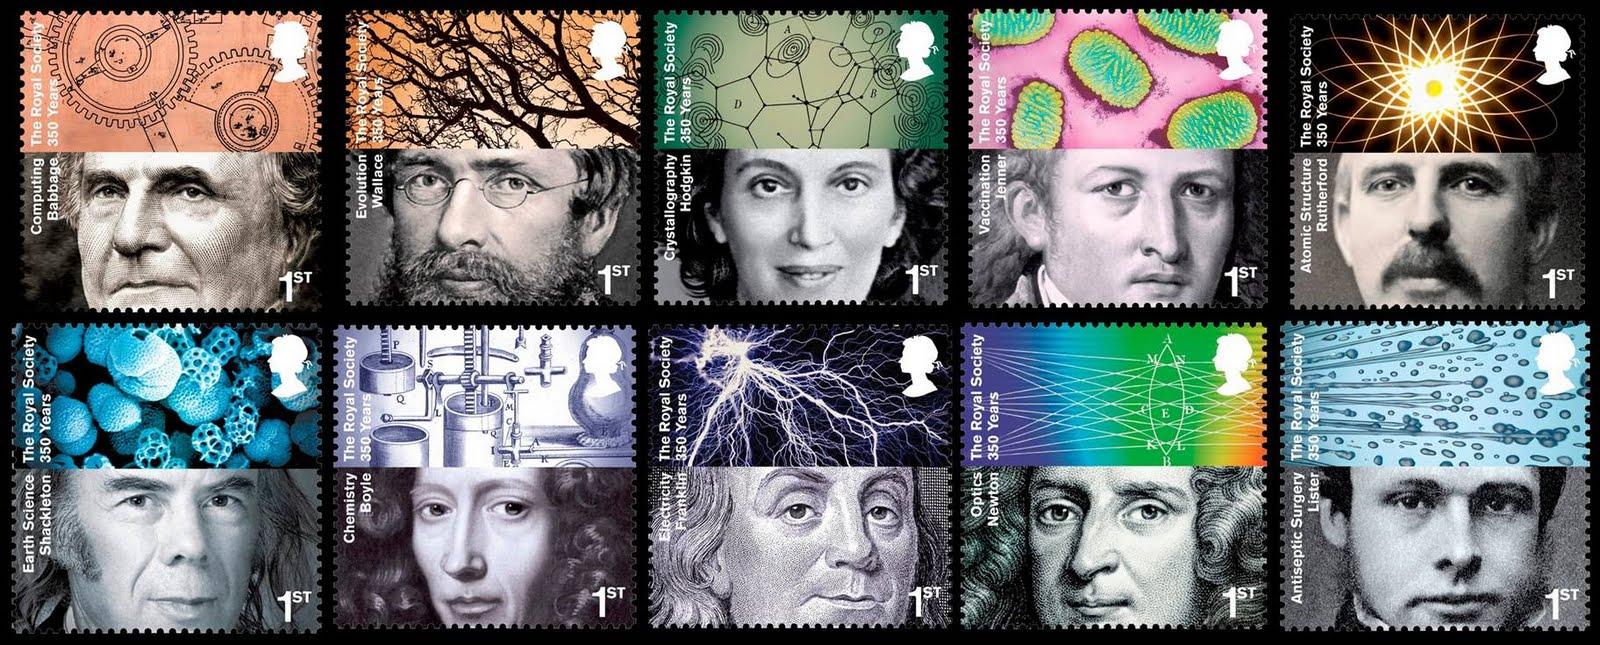 350 years of the Royal Society stamp set